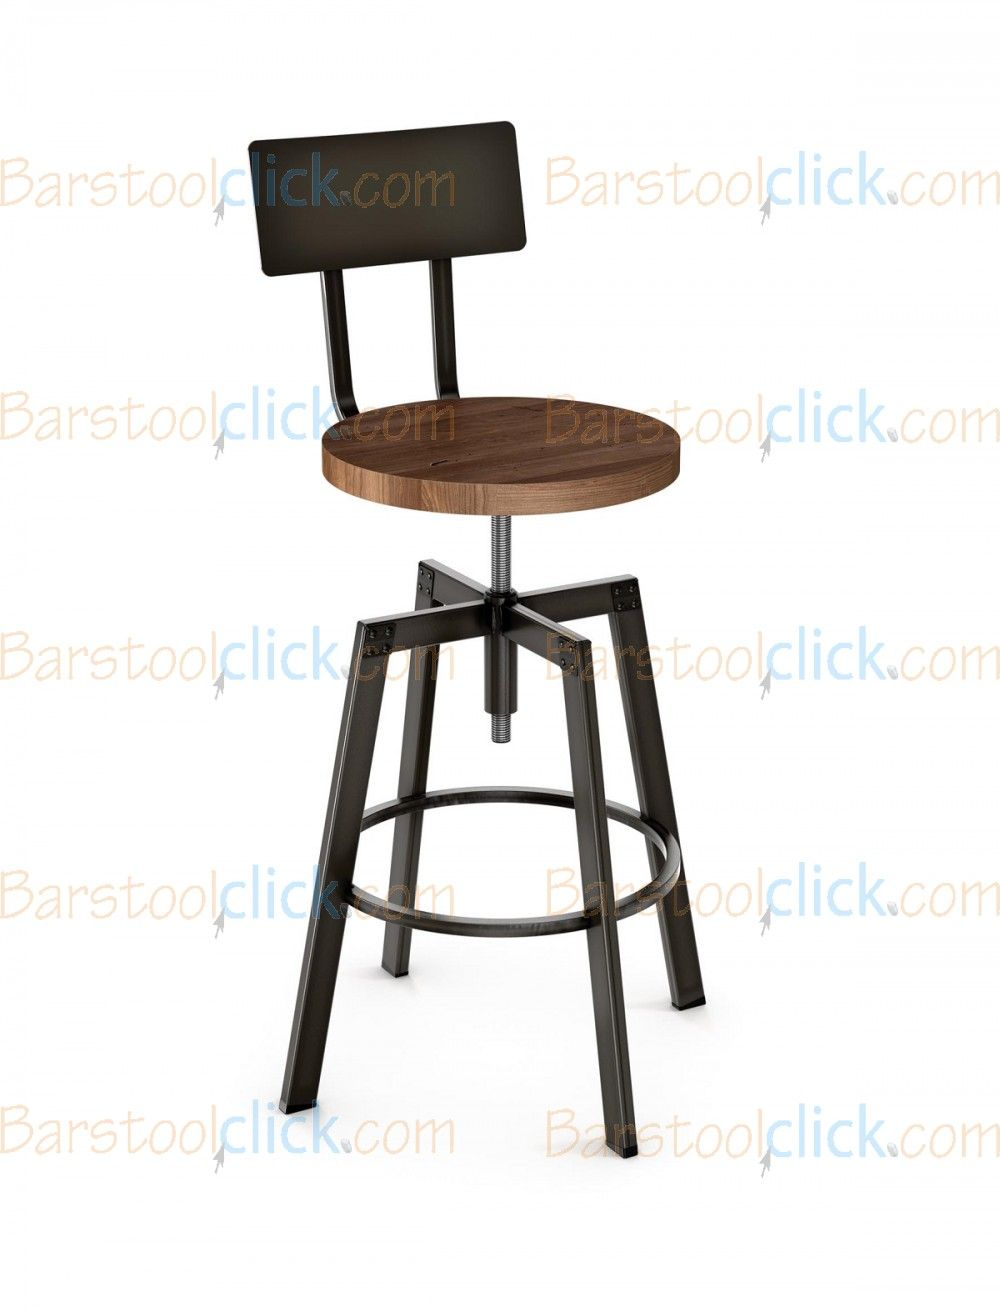 Amisco architect screw adjustable height swivel bar stool with distressed wood seat and metal backrest 40563